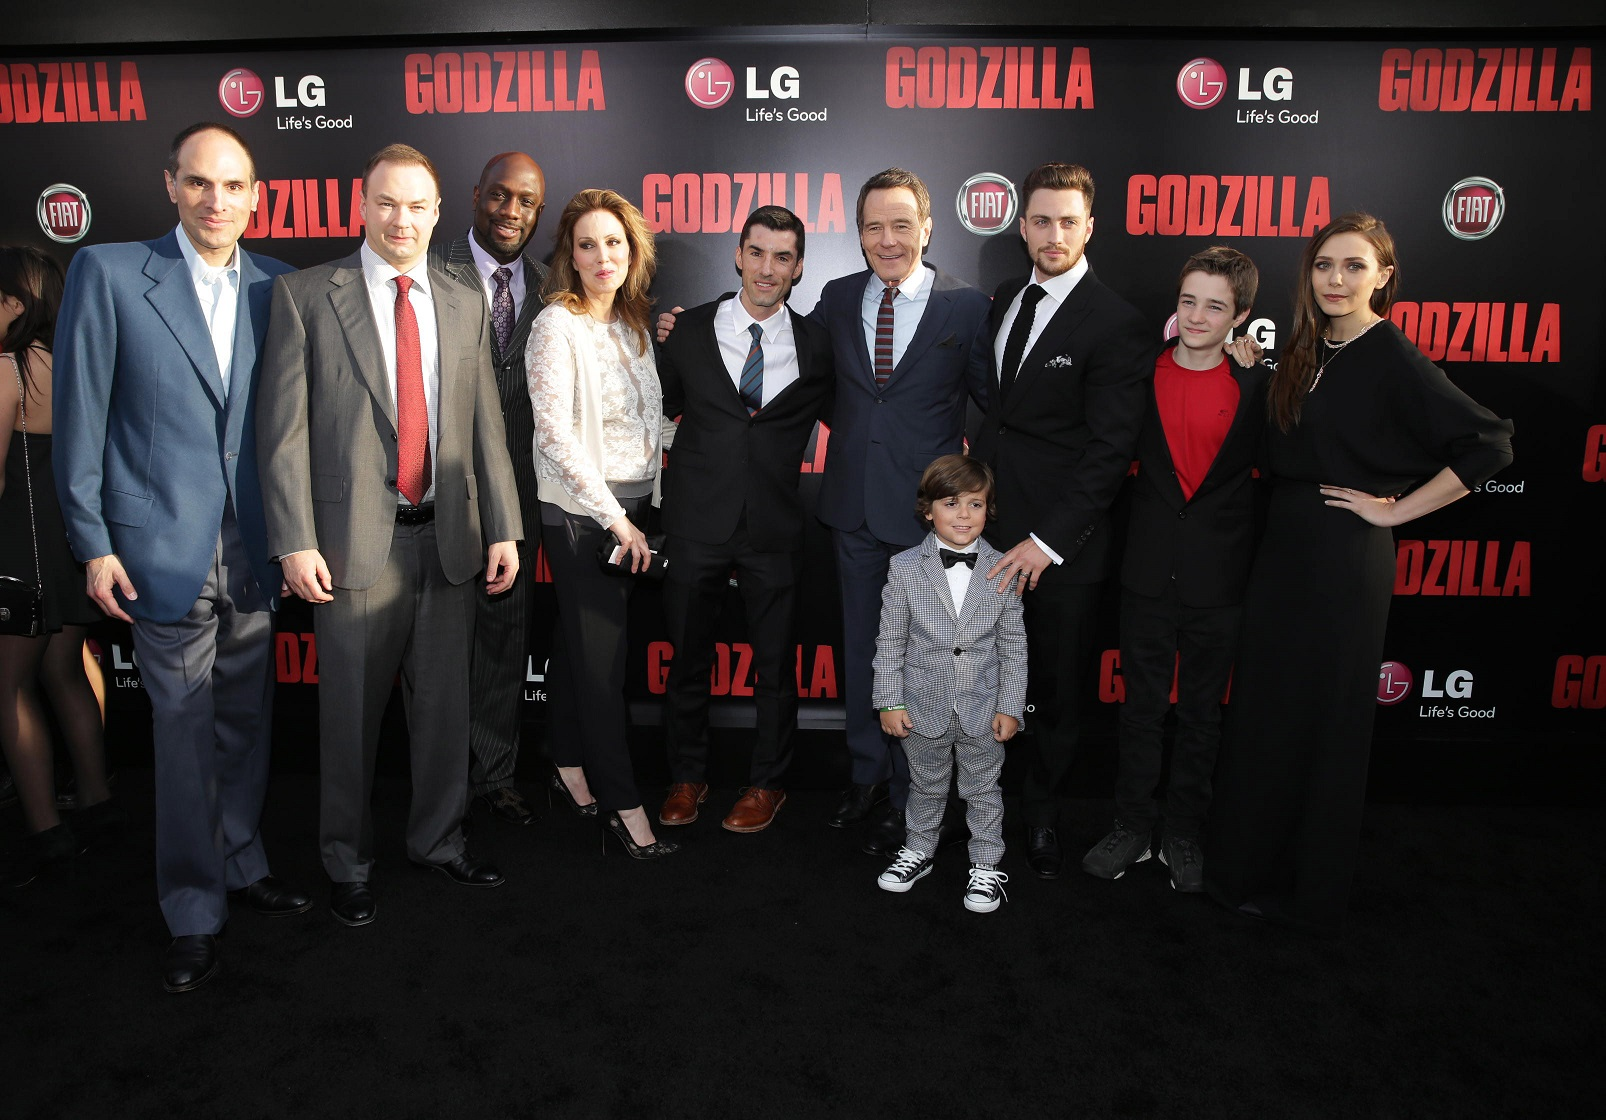 Godzilla Premiere Cast Check Out Images from the Godzilla Black Carpet Event